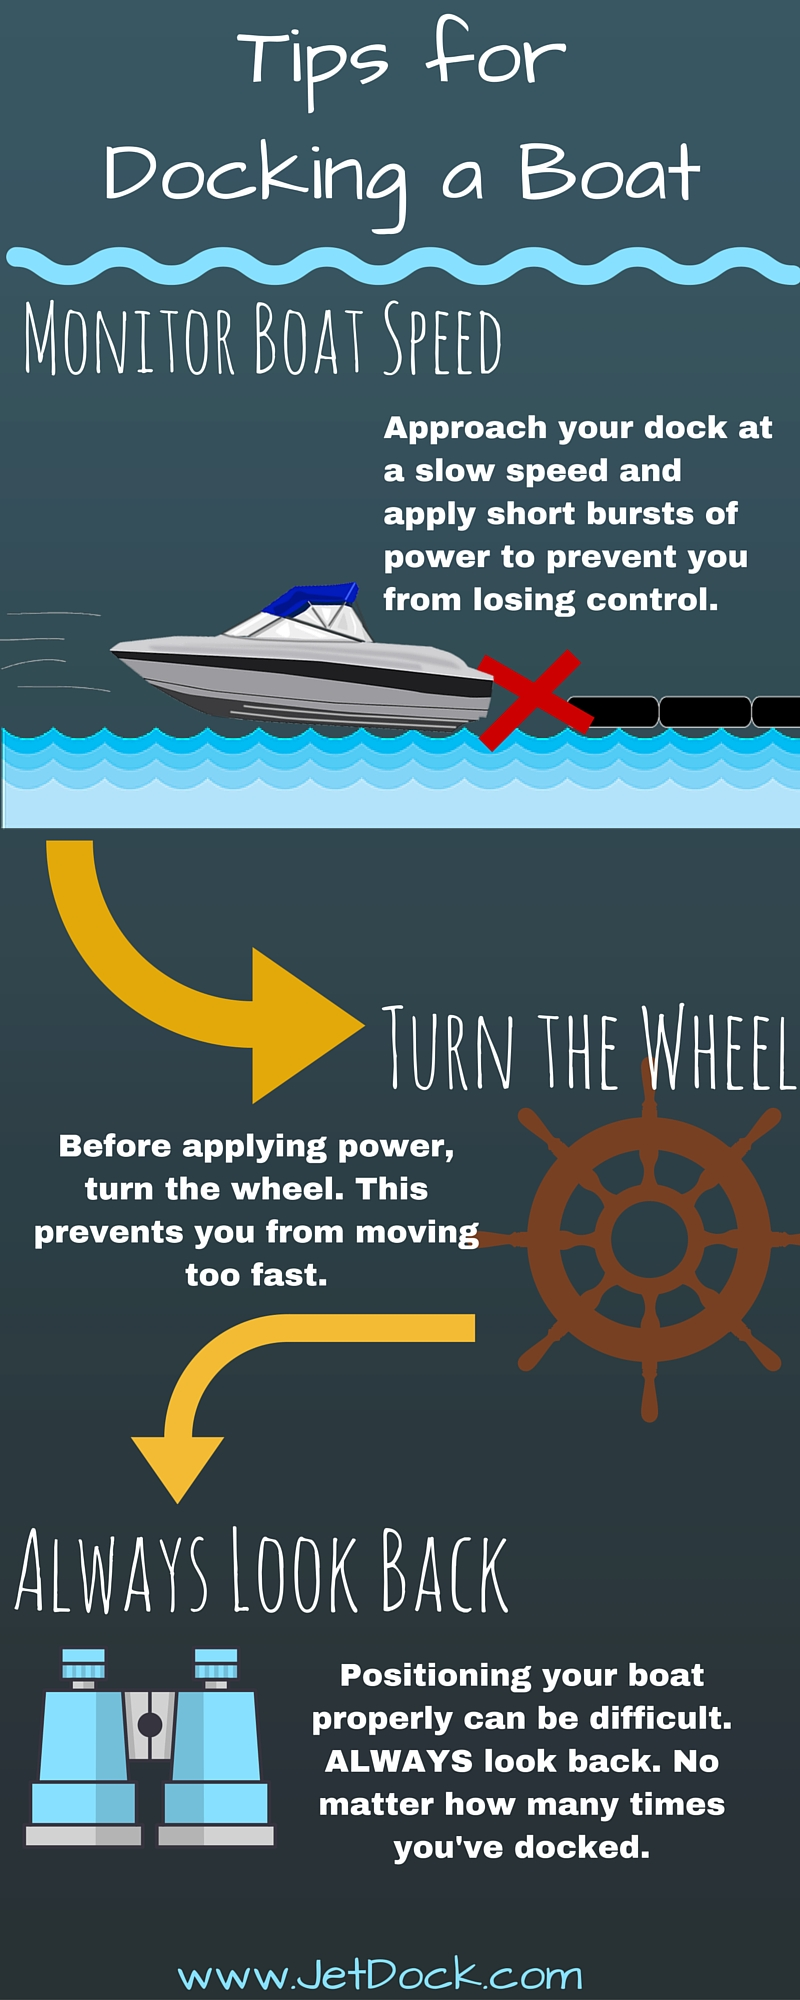 Tips on how to dock a boat from JetDock.com